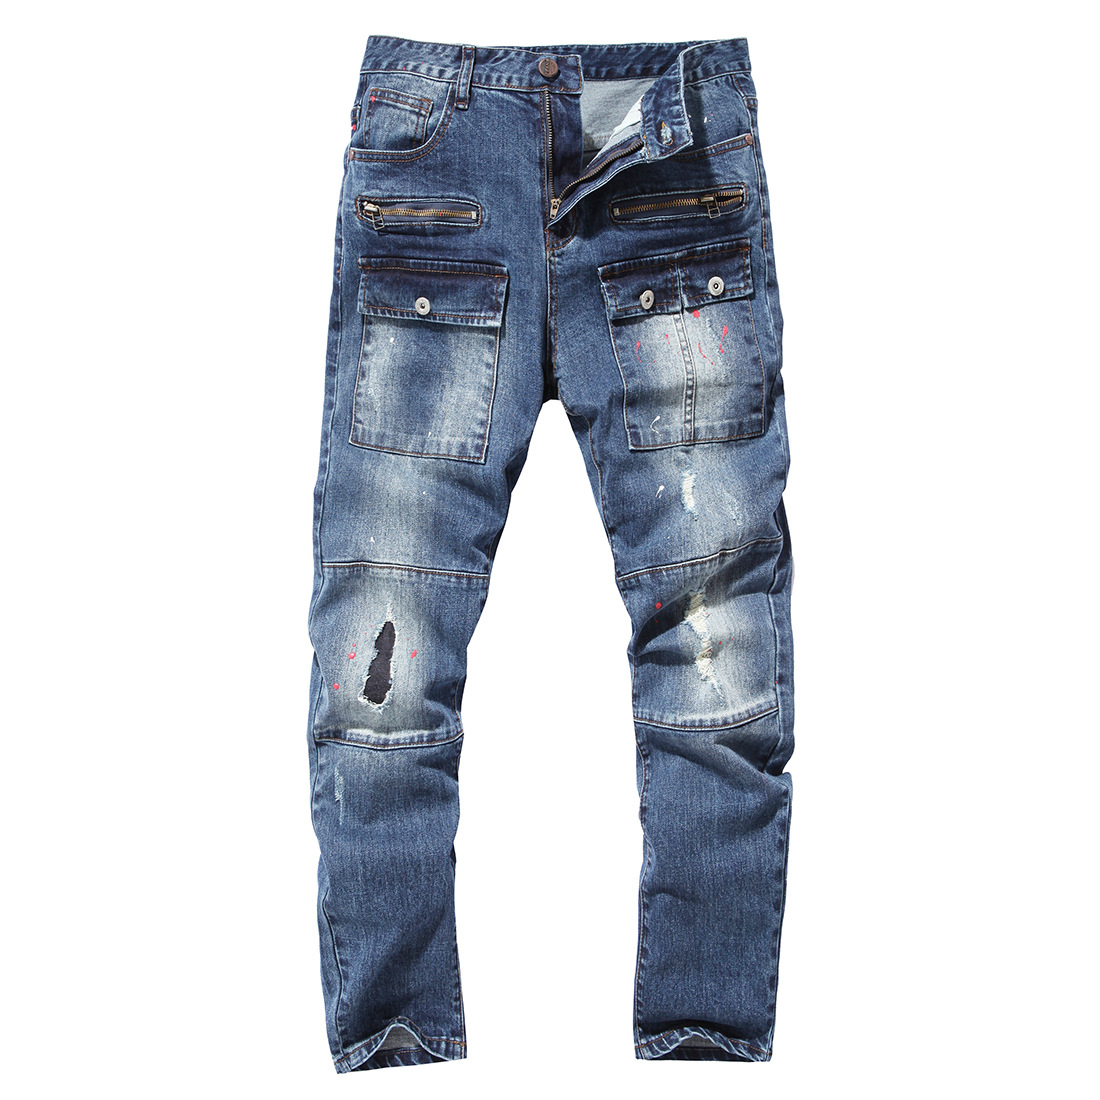 2019 Spring And Autumn With Holes MEN'S Jeans End Boutique Pure Cotton Cowboy Trousers Multi-pockets Lacquer Fashion-Y609